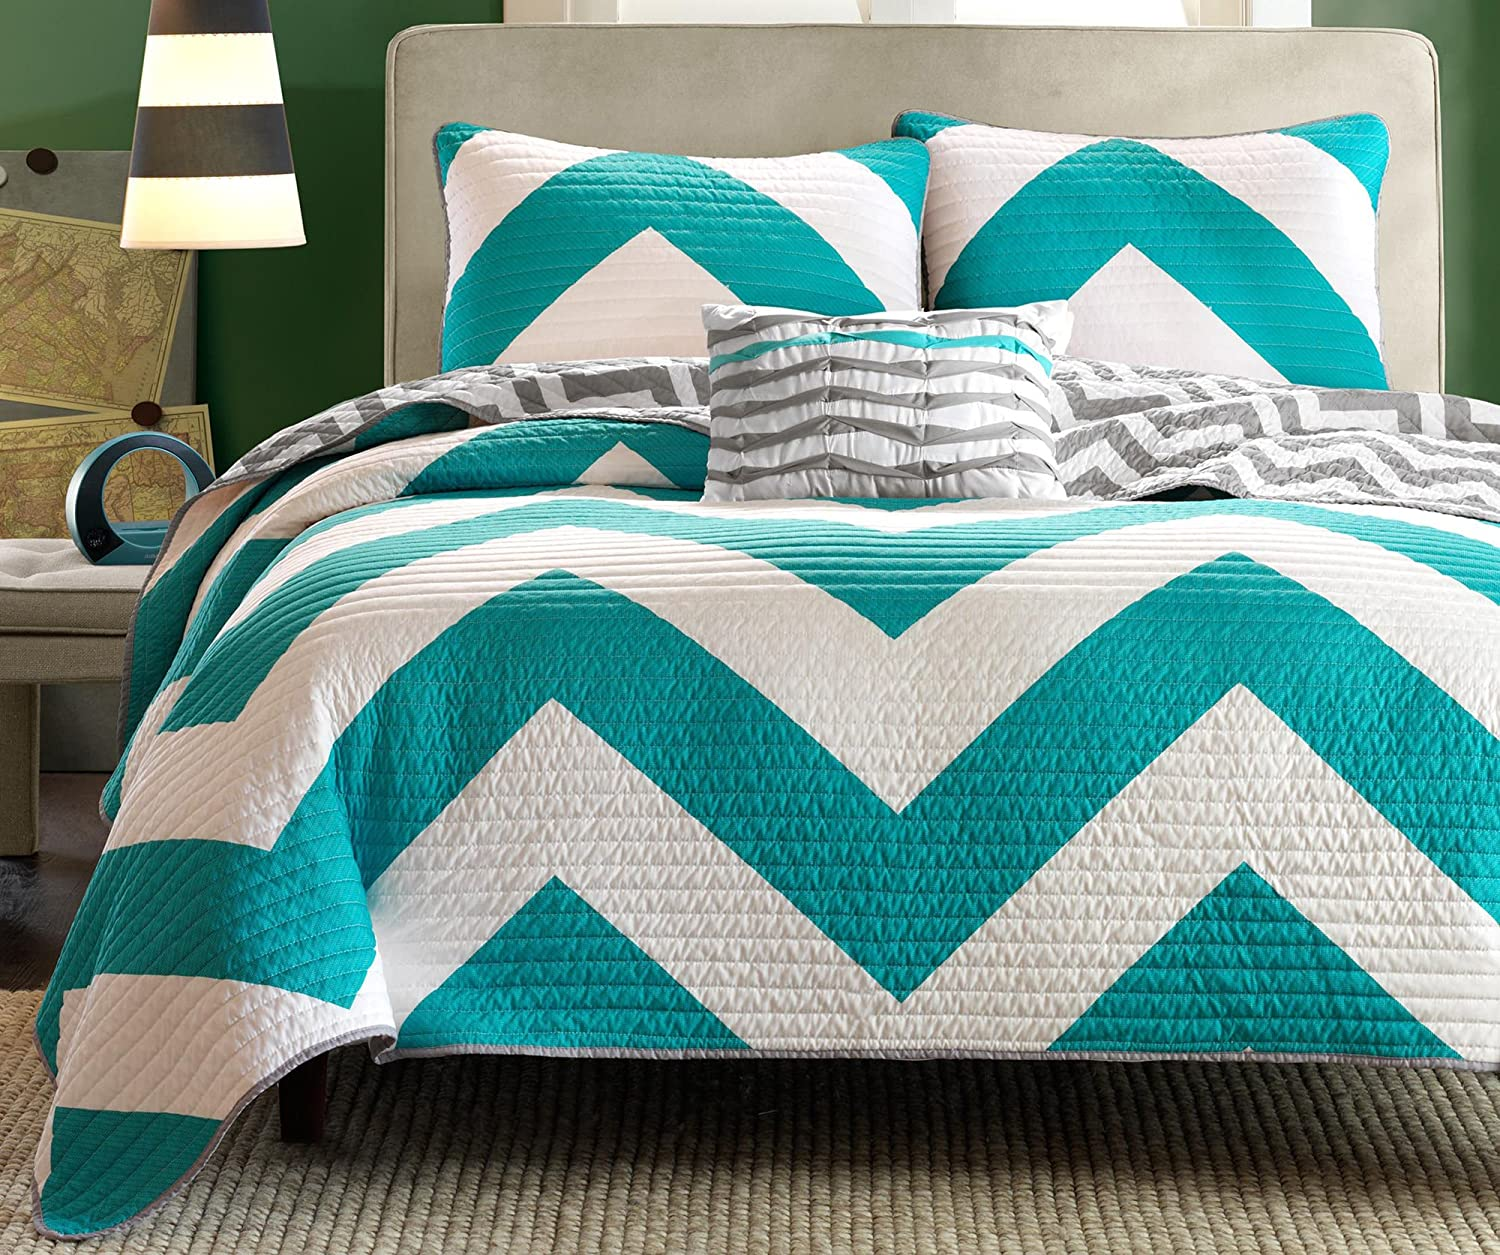 Simple bed sheets pattern - Simple Bed Sheets Pattern 46